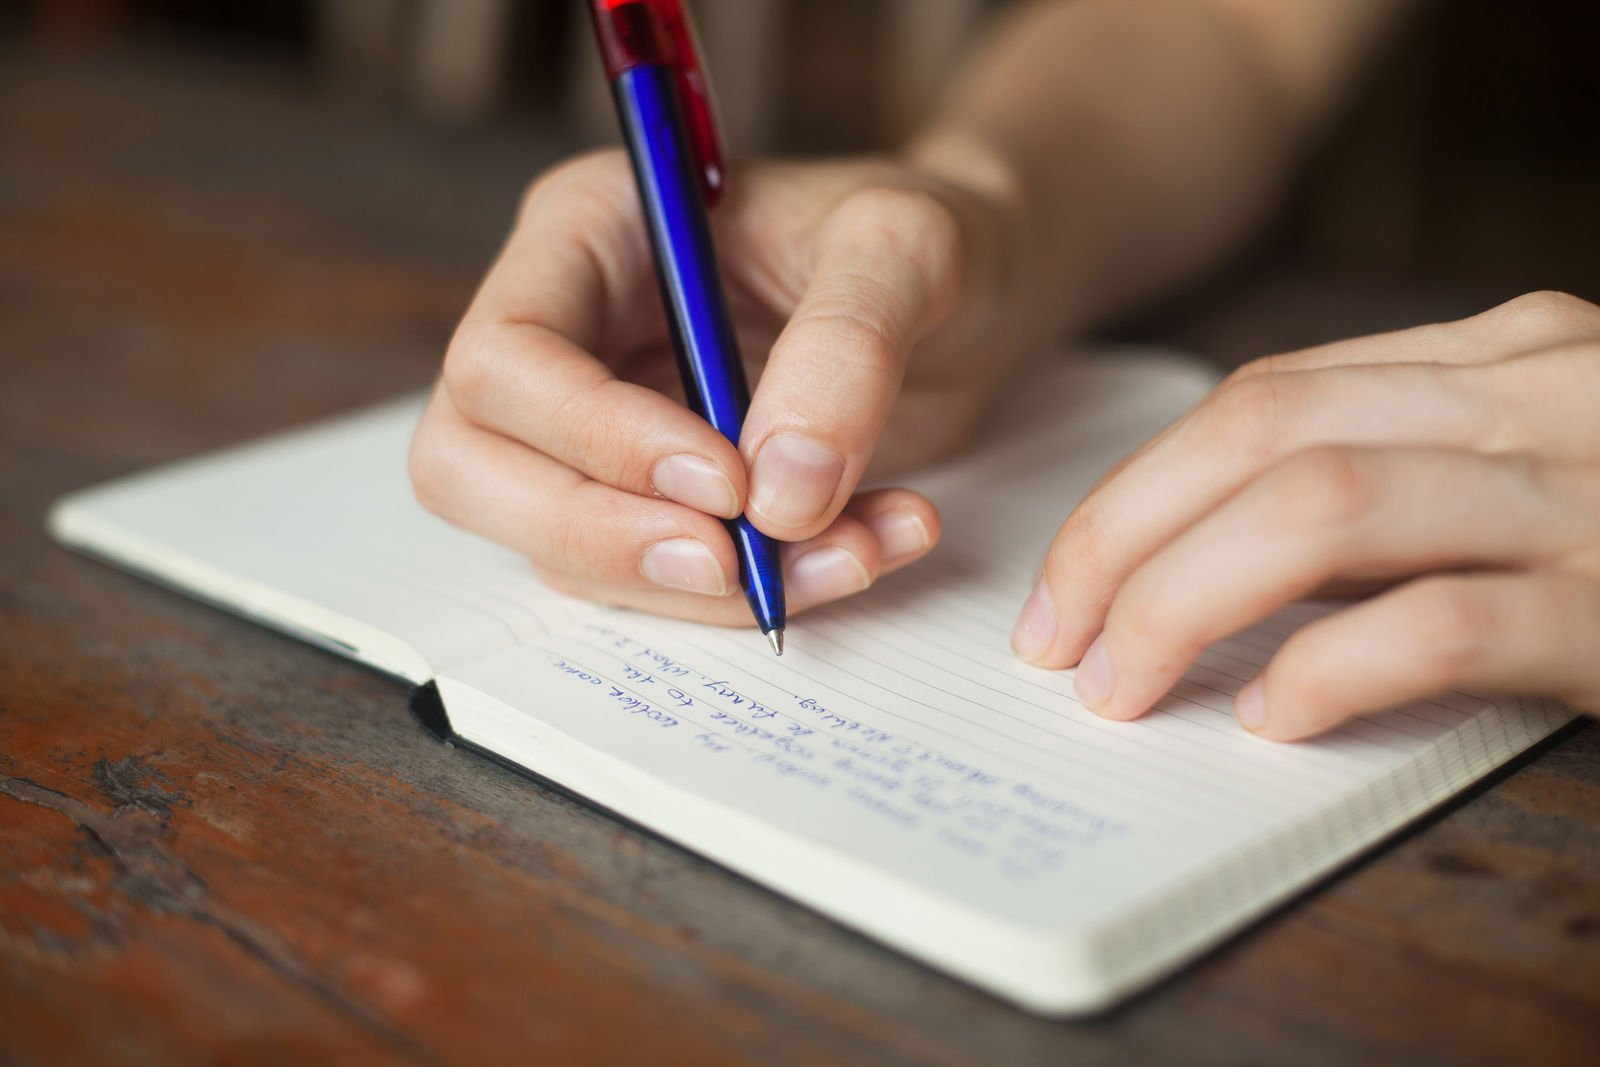 preci writing 2 precis writing precis writing is an art, since you need to extract the maximum information and then convey the information in the minimum of words the goal is to preserve the core essence of the.